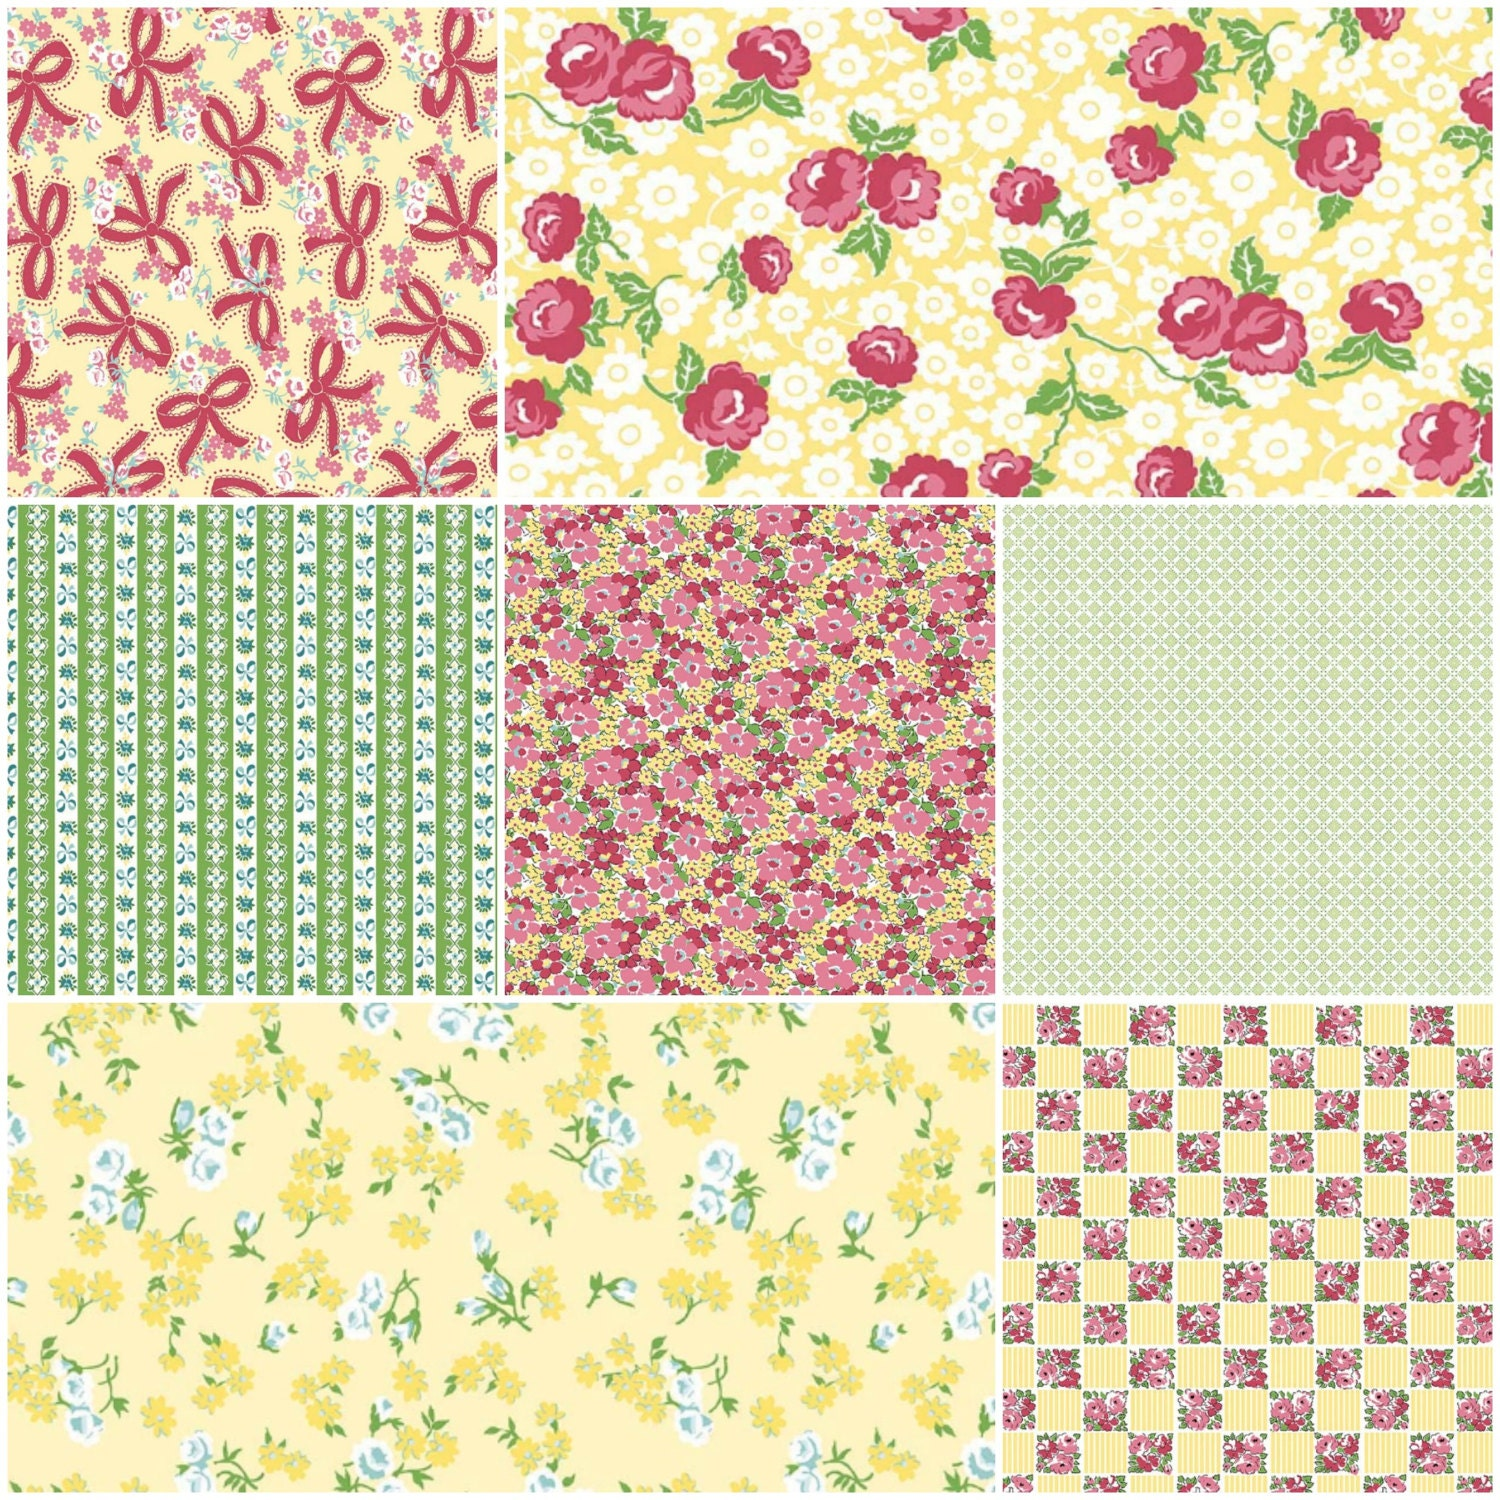 Dainty Darling Fabric by Lindsay Wilkes for Riley Blake Designs - Yellow Colorway - 7 yards